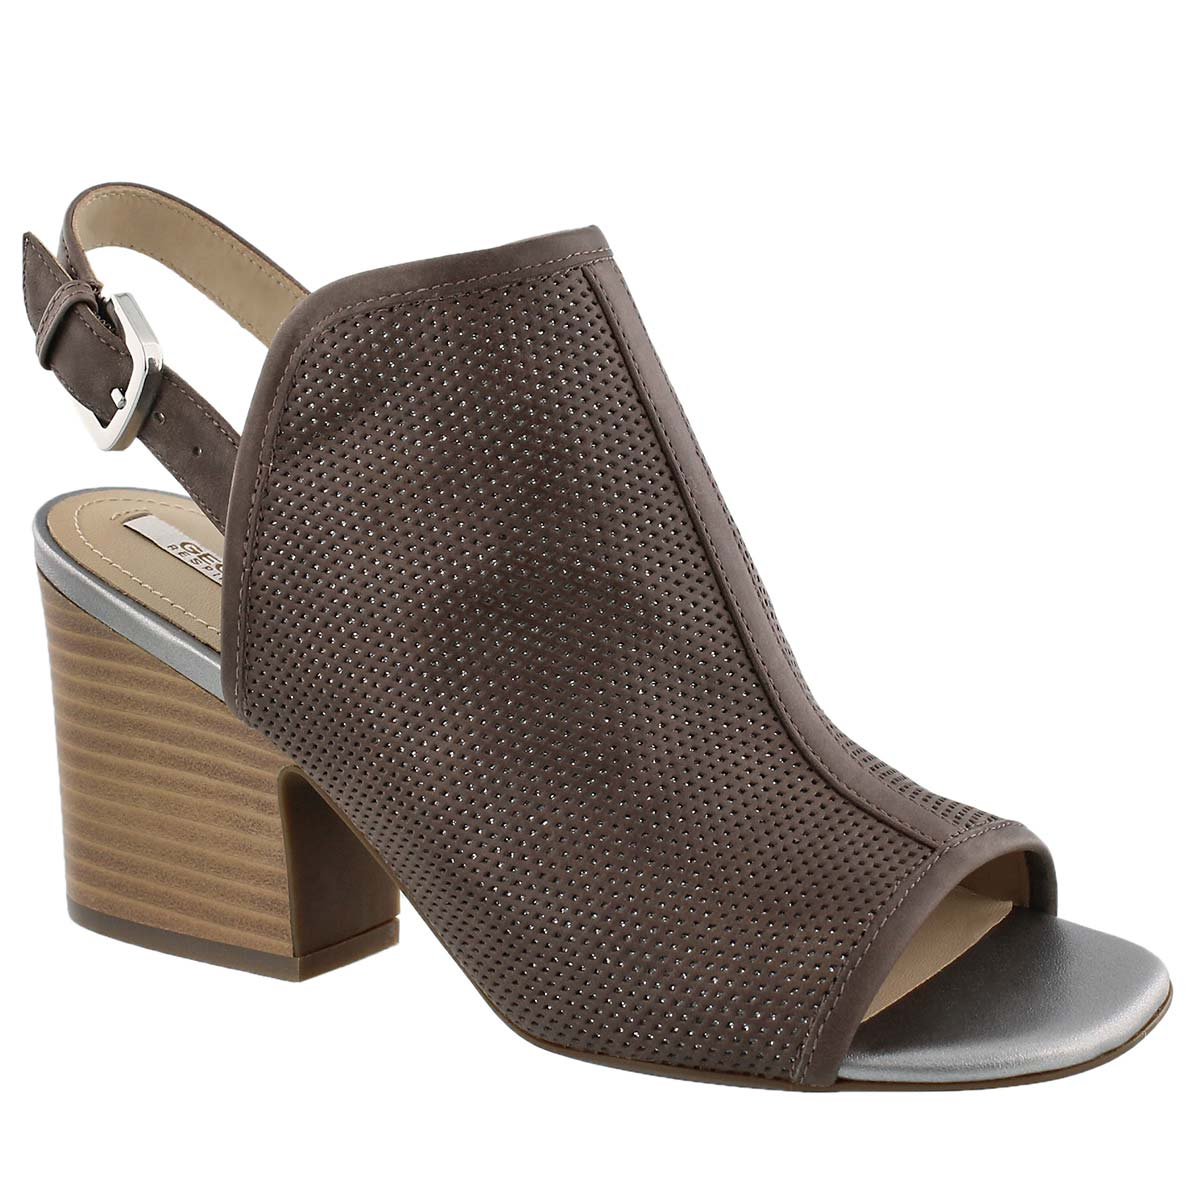 Women's MARILYSE C taupe/silver dress sandals